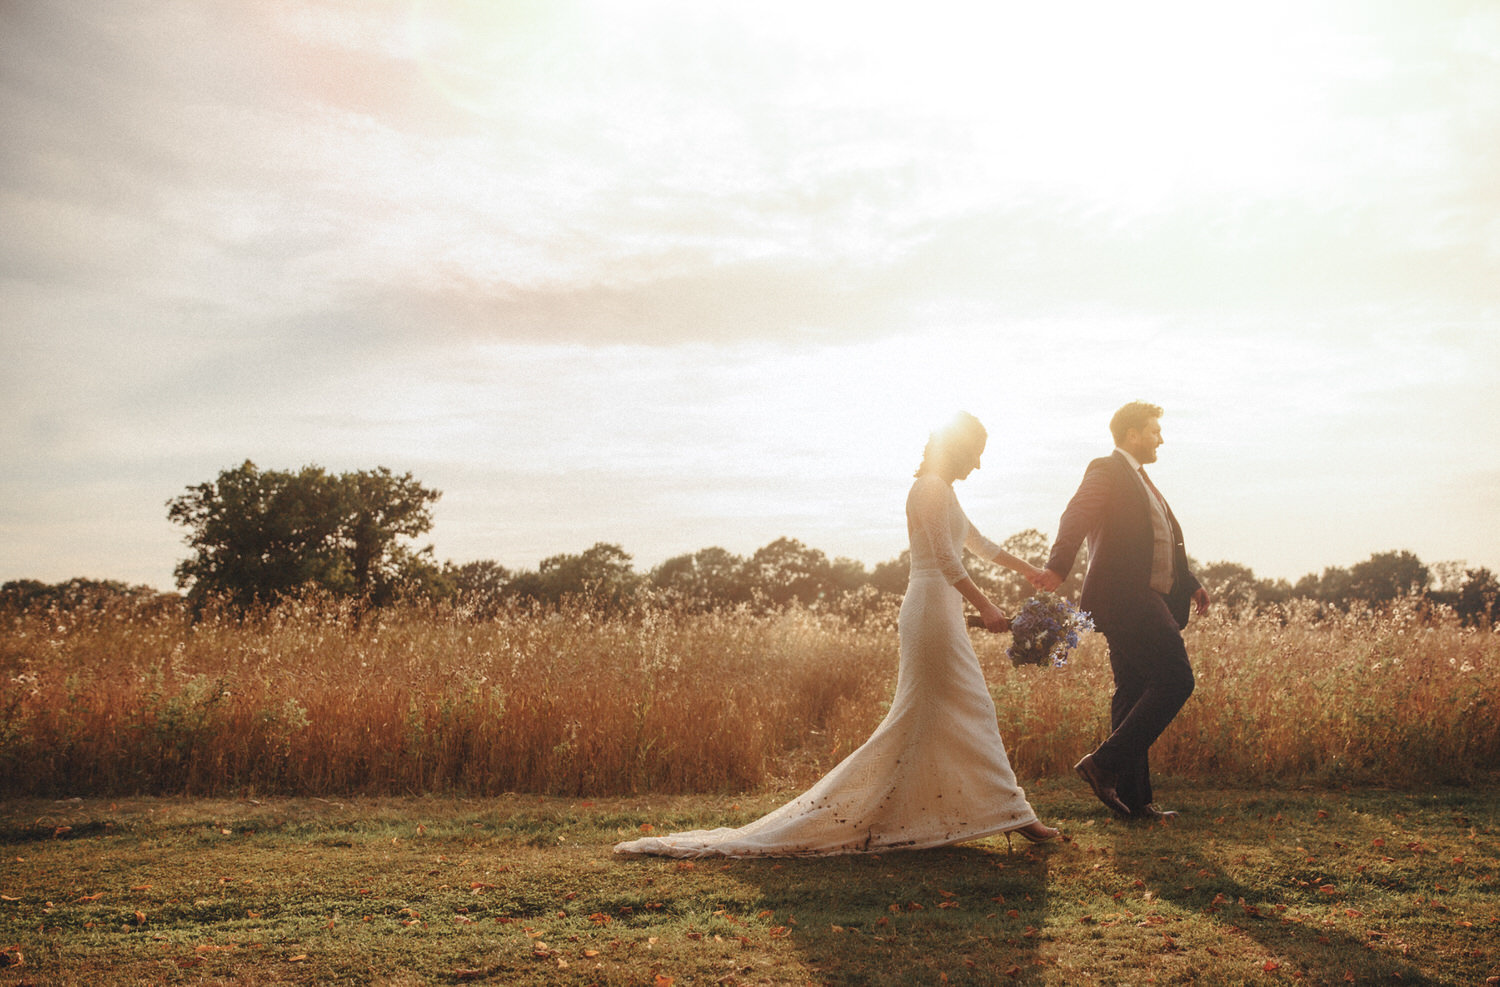 Bride and groom walk in a field during sunset